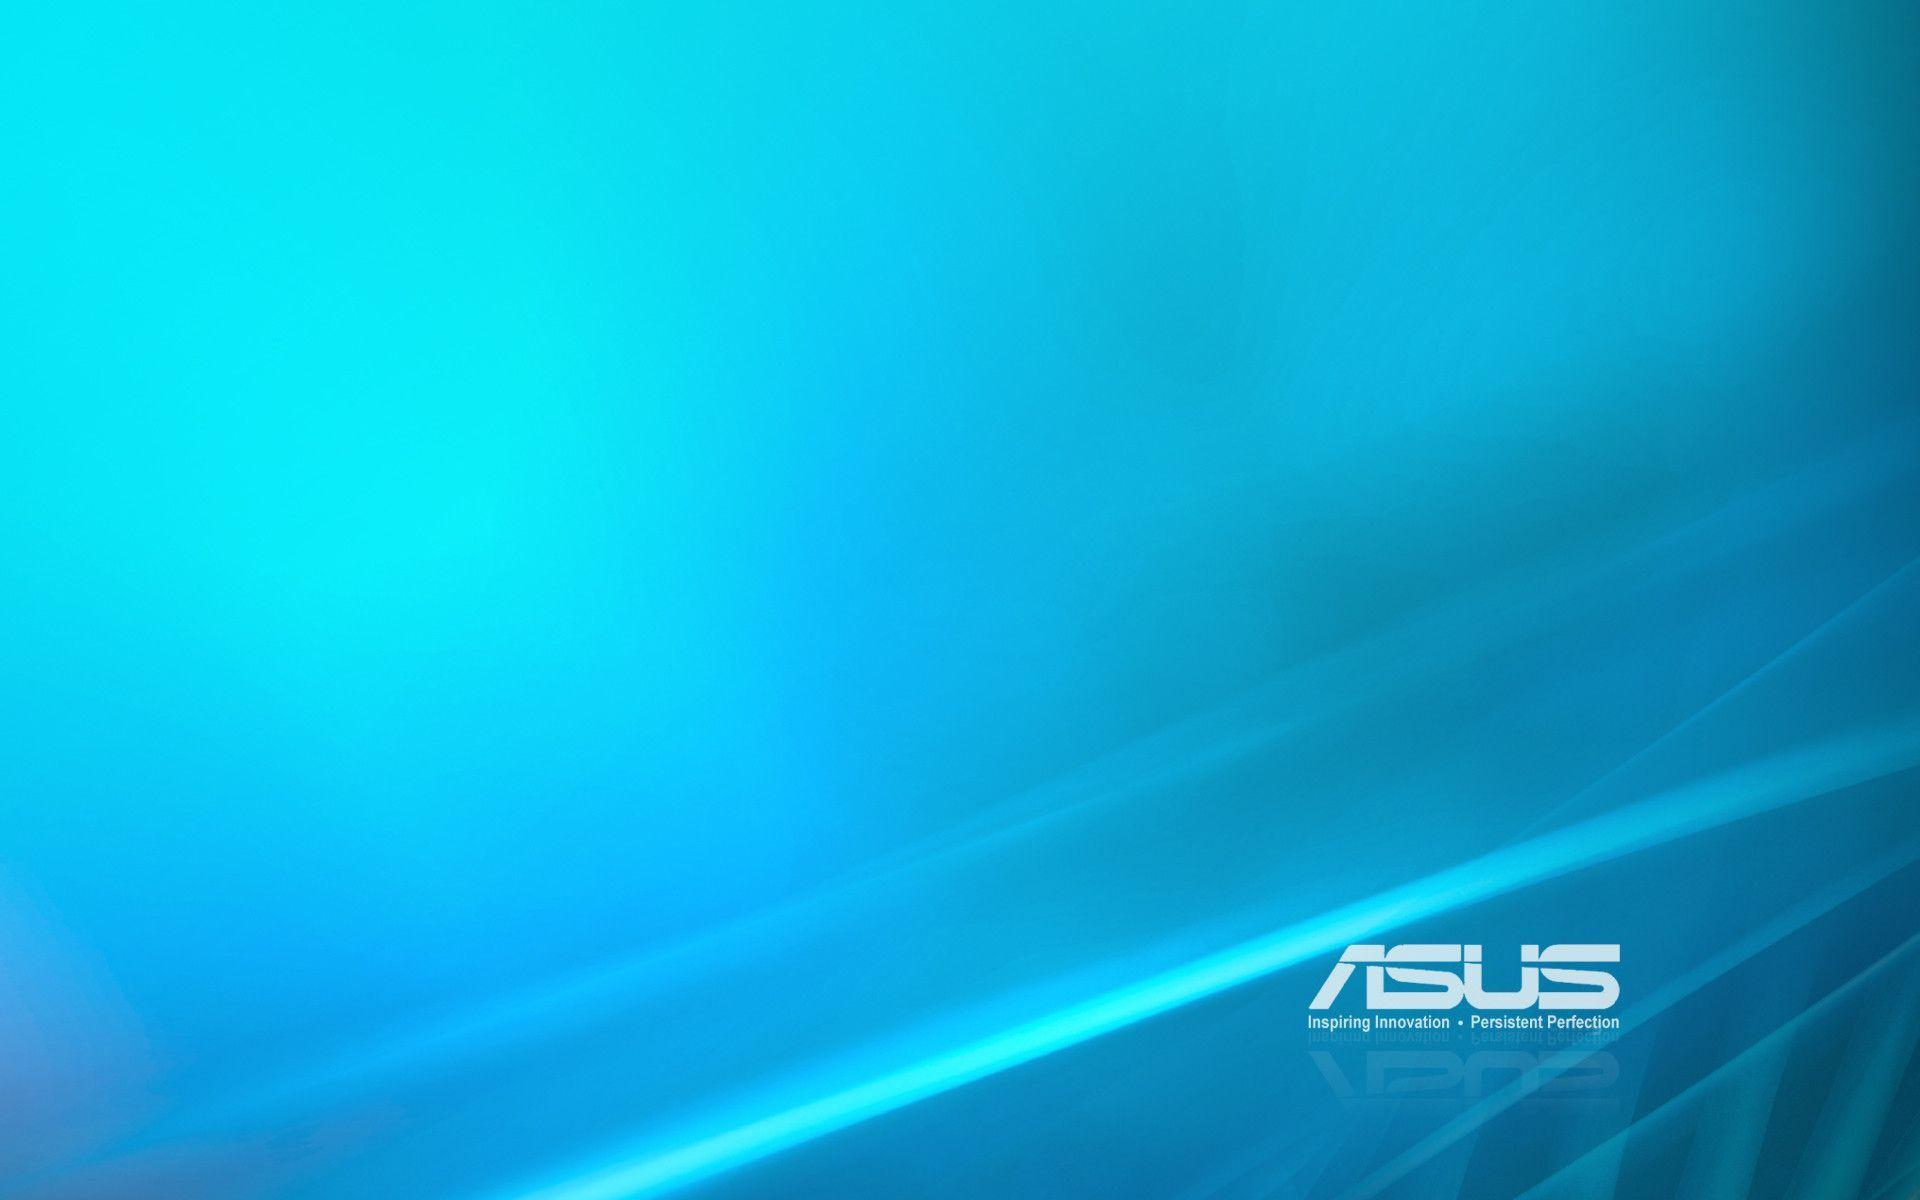 Asus Desktop Backgrounds Wallpaper Cave